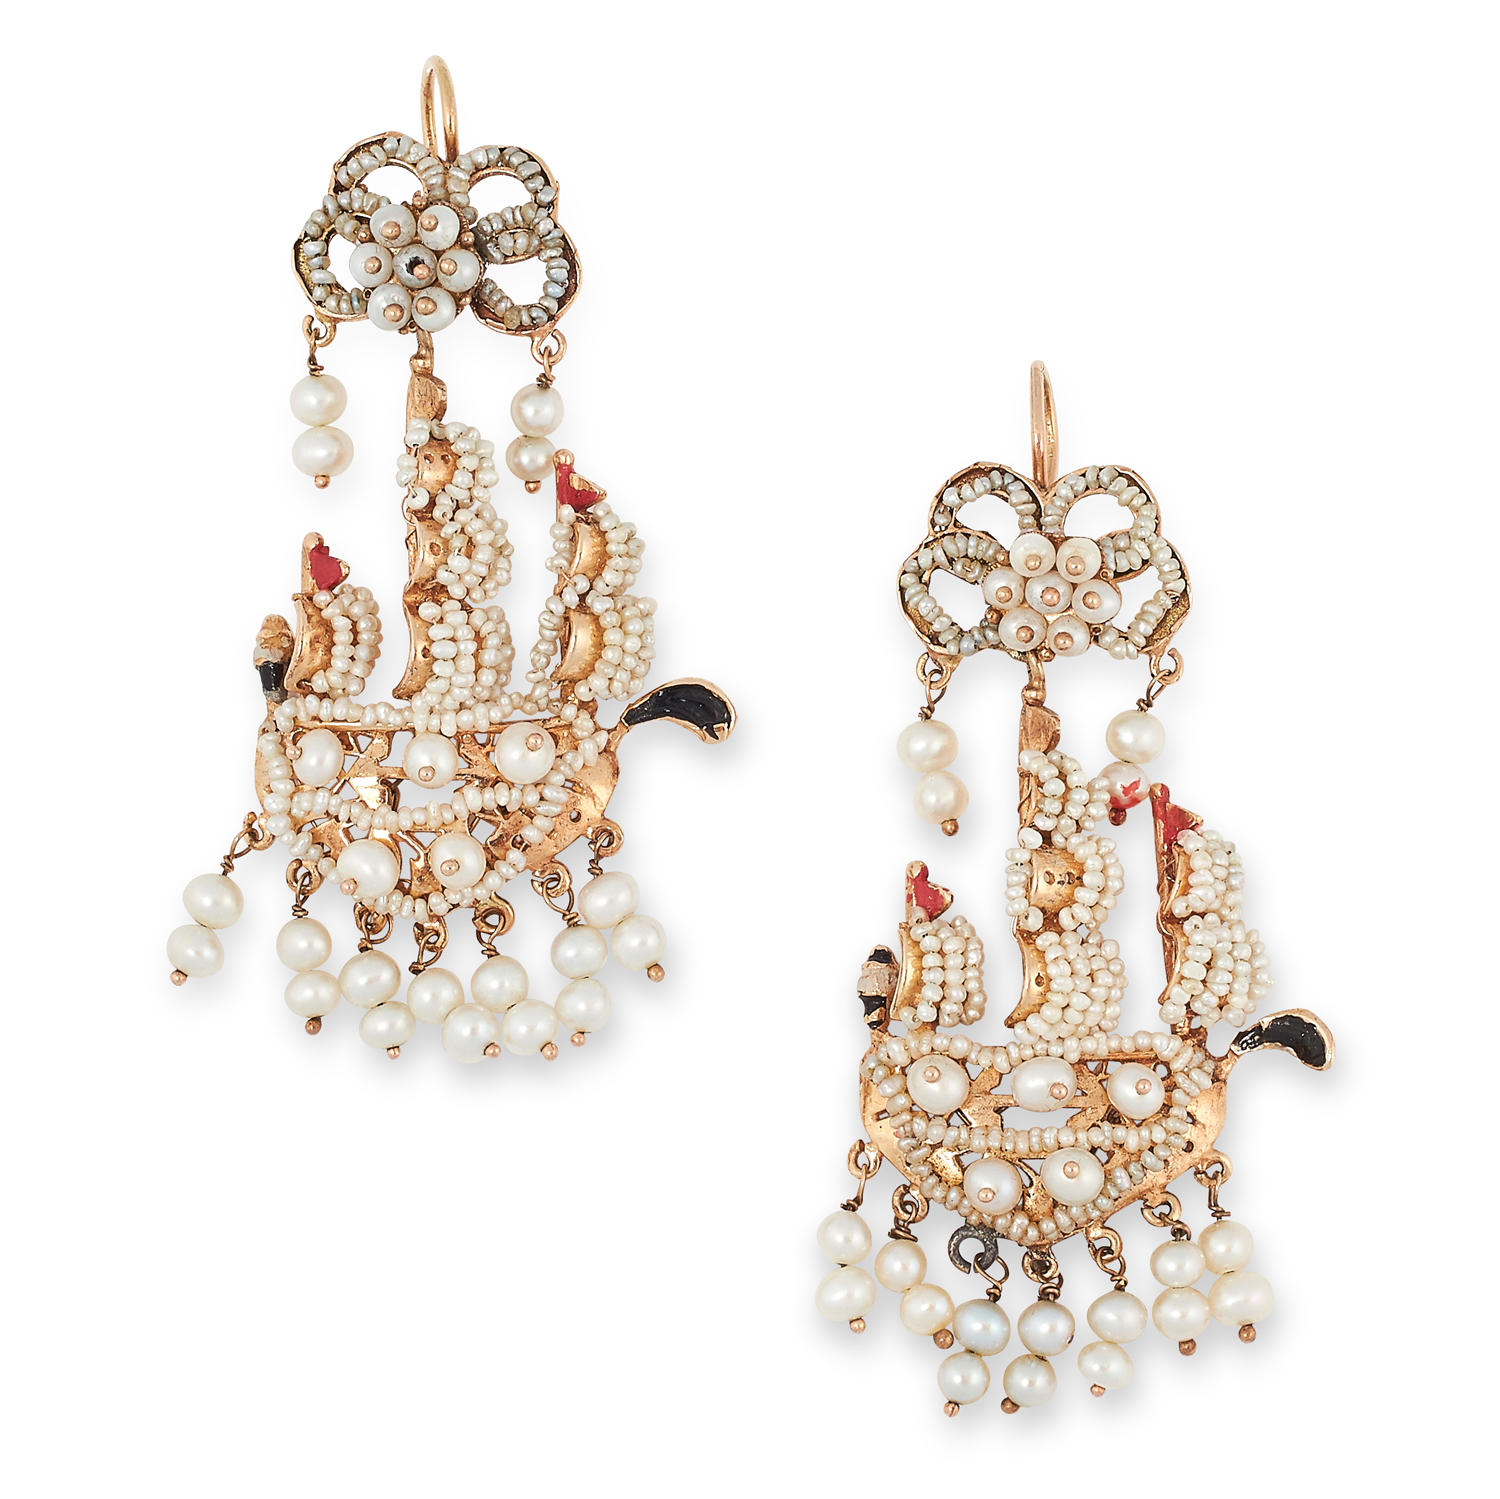 A PAIR OF ANTIQUE PEARL AND ENAMEL GALLEON SHIP EARRINGS in yellow gold, each designed as a three